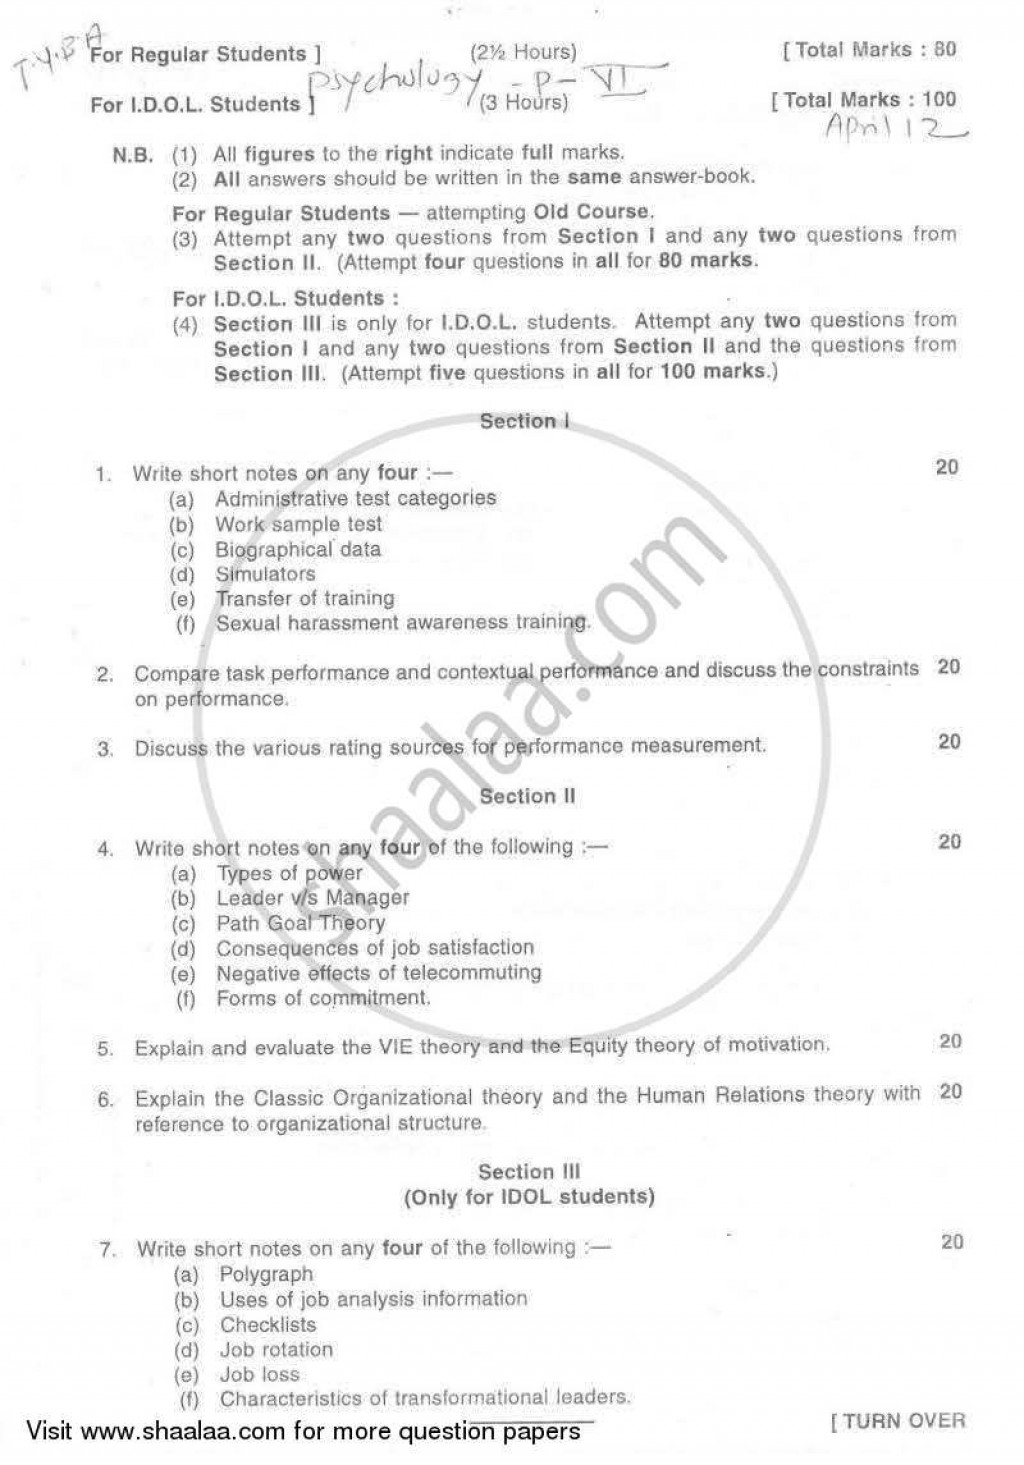 017 Psychologyearch Paper On Dreams University Of Mumbai Bachelor Industrial Organizational T Y Yearly Pattern Semester Tyba 2011 29a03925dfc524f2aa4cb10e4d3da996a Singular Psychology Research Articles 2017 Topics Large